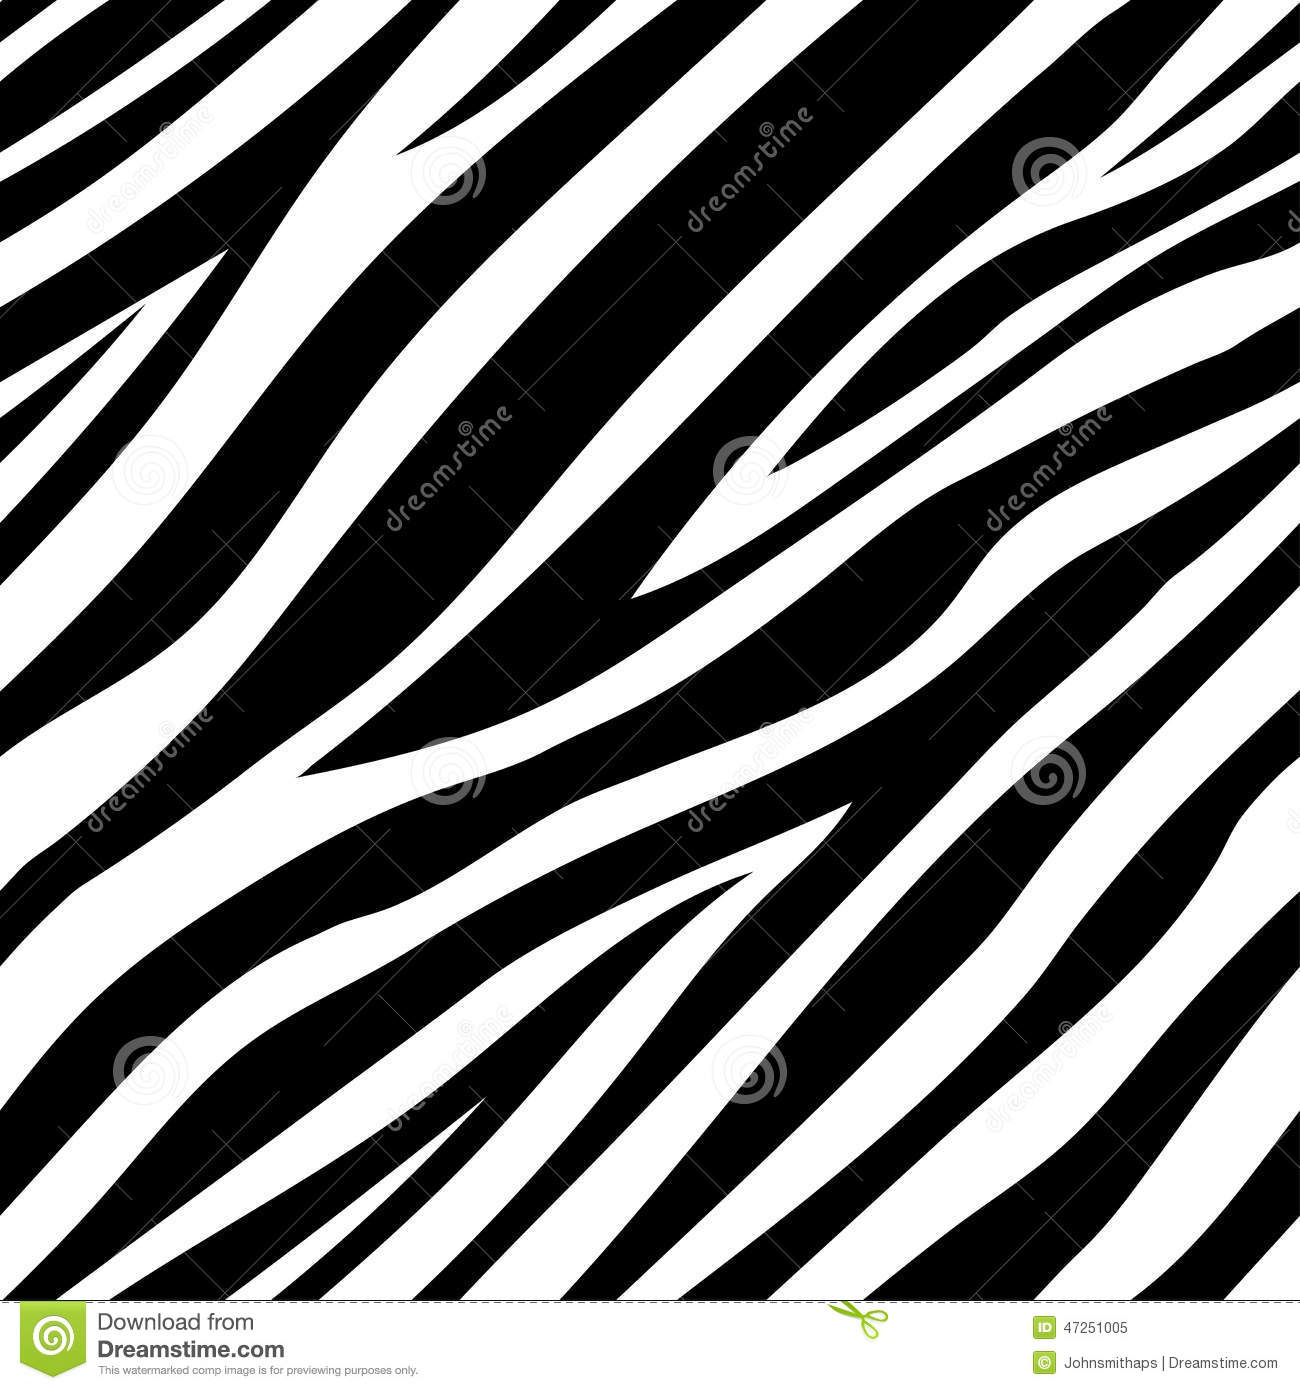 Animal Print Wallpaper Border Vector Illustration Of Seamless Zebra Pattern Stock Vector